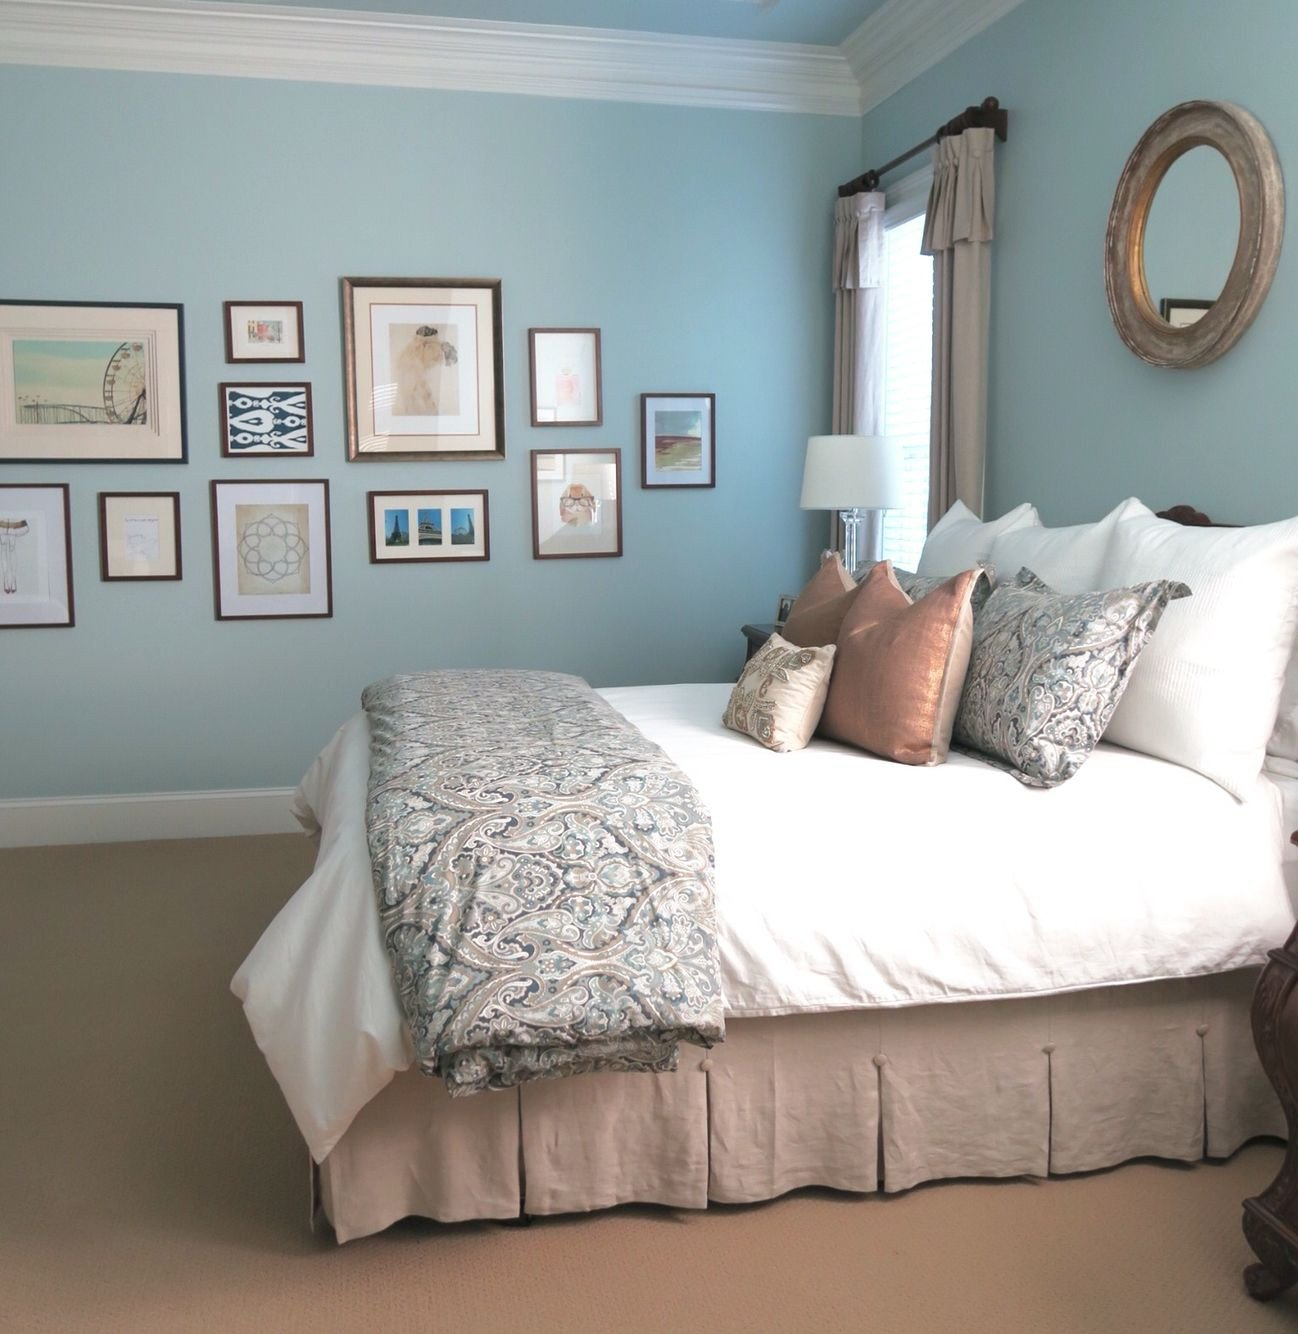 Bedroom Design Photo Gallery Luxury Beautiful Pale Blue Master Bedroom with Gallery Wall